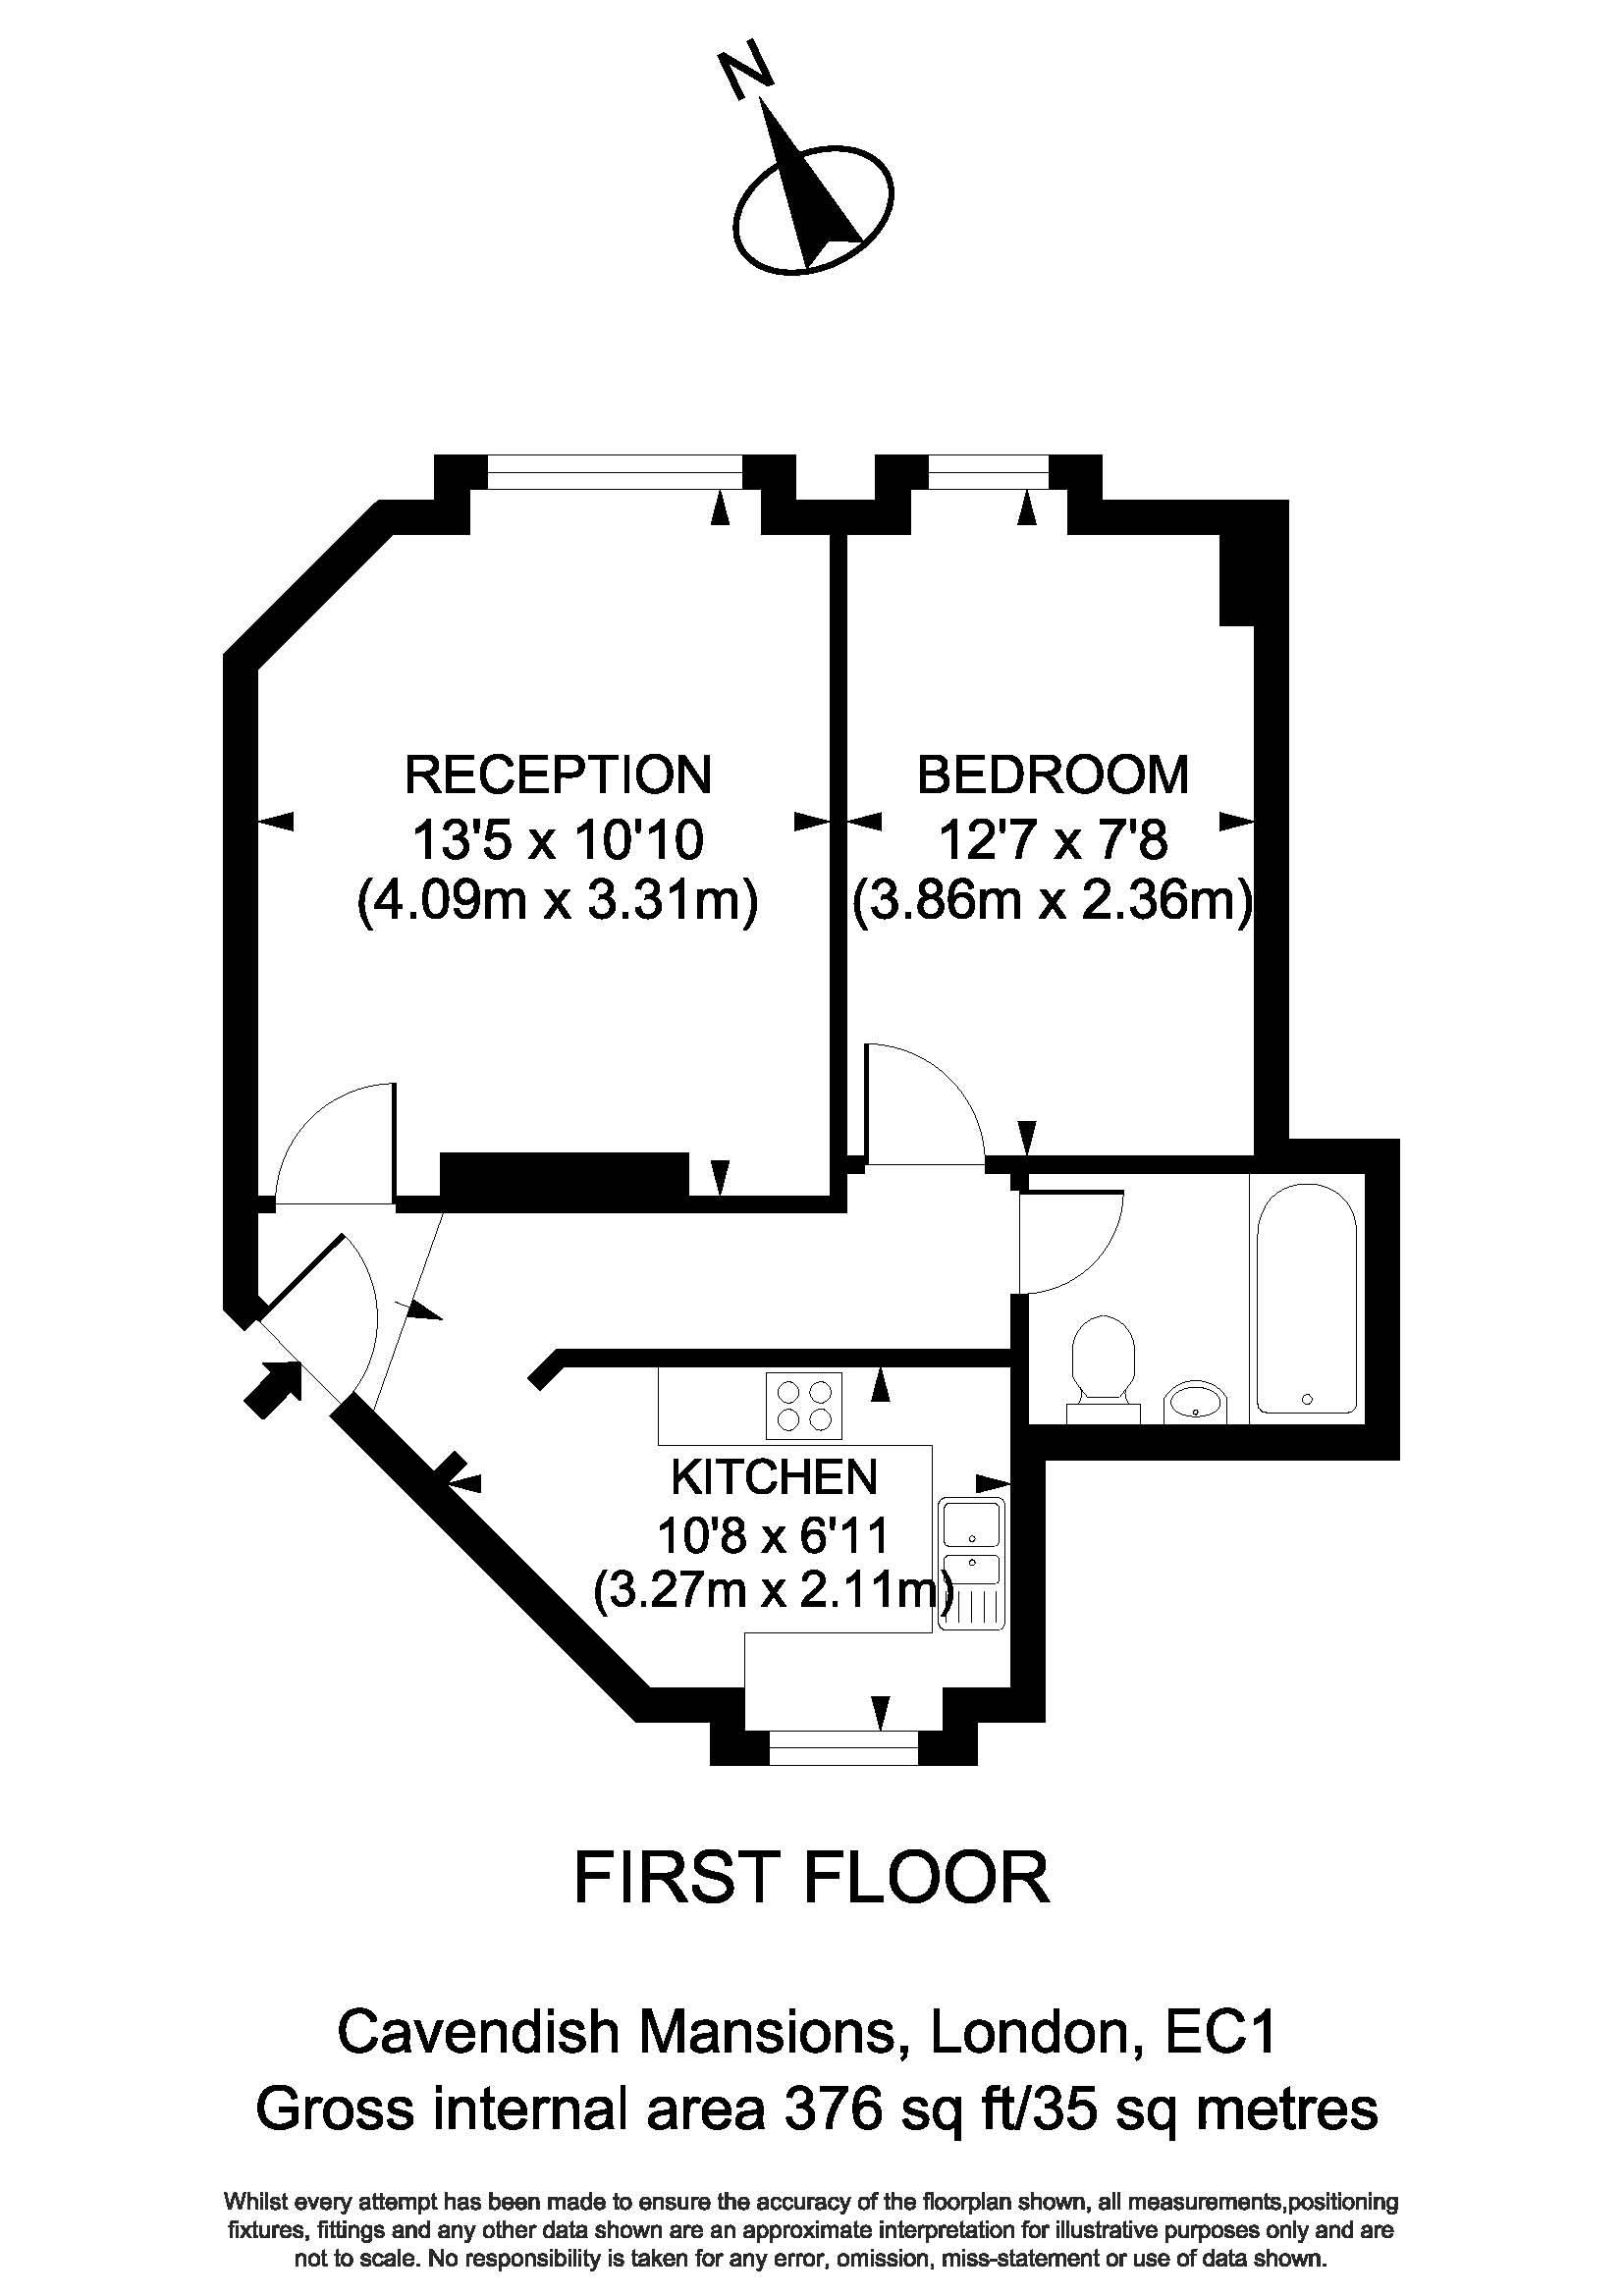 Floorplan - 71 Cavendish Mansions